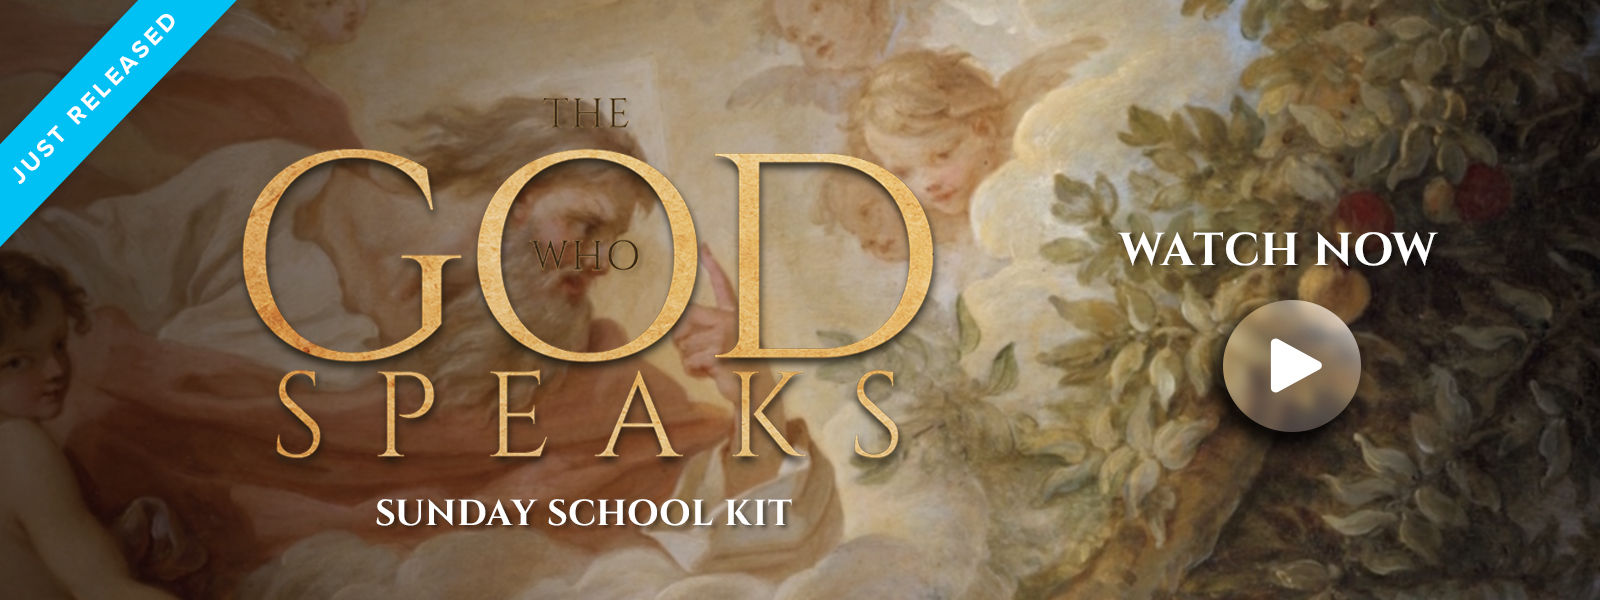 The God Who Speaks - Small Group Curriculum